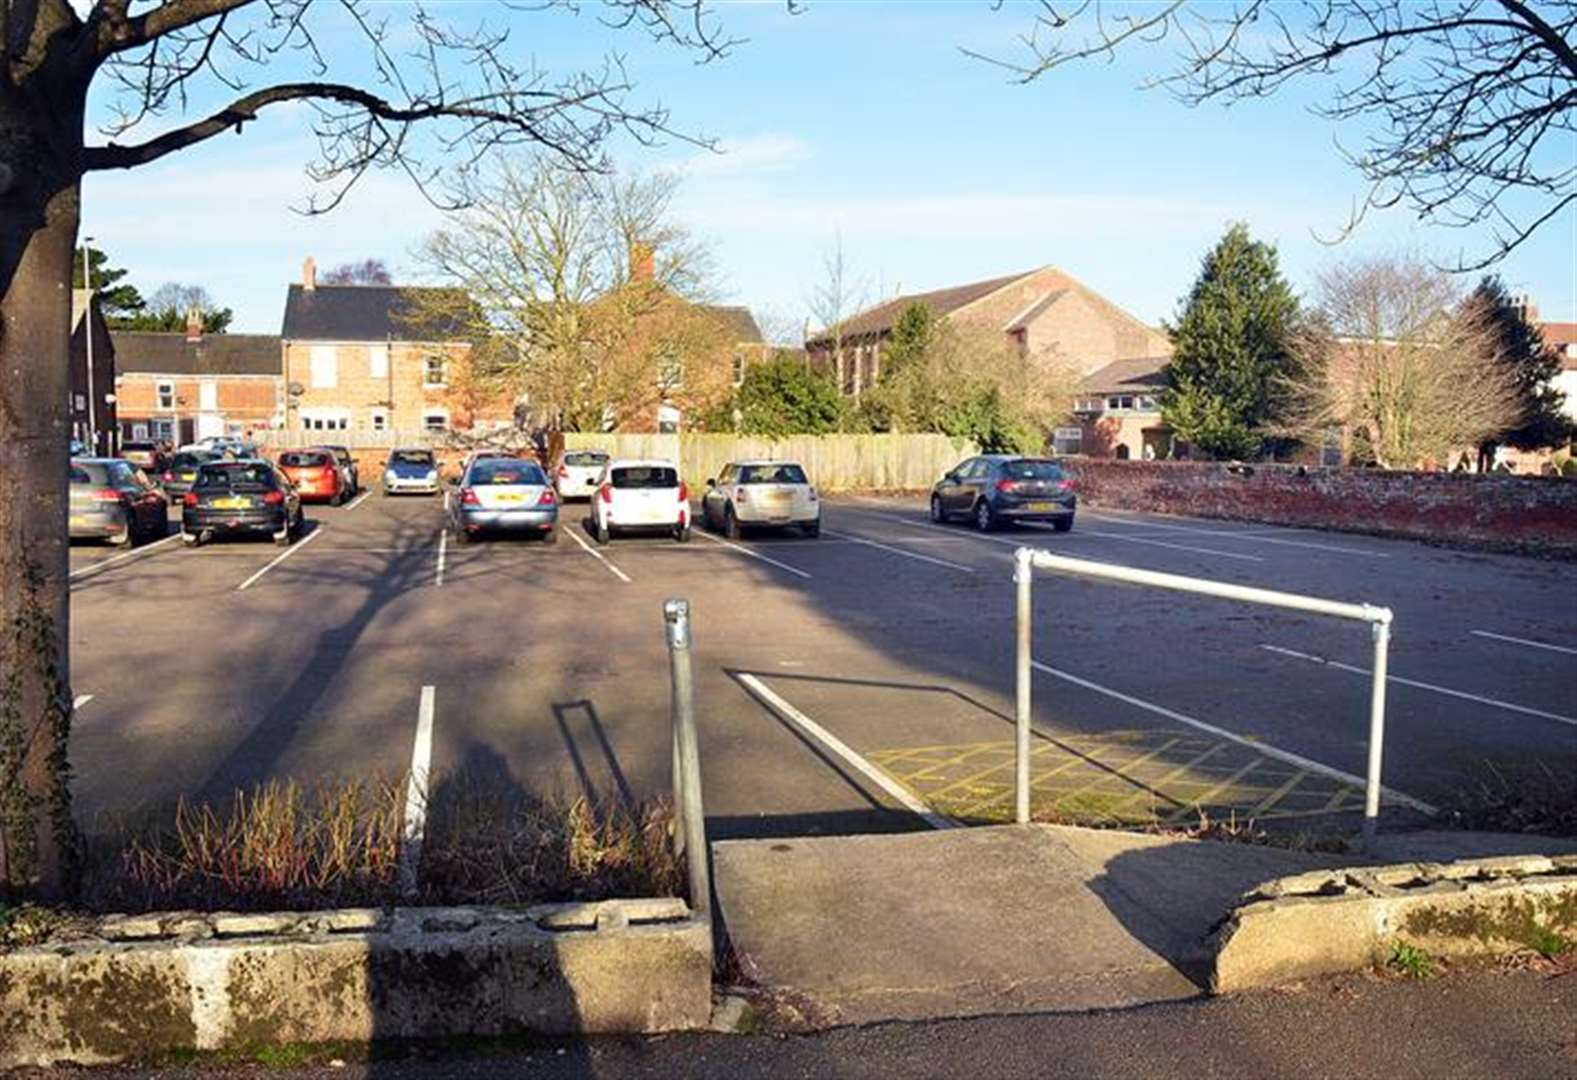 Assurance wanted over car park charges after public meeting in Long Sutton